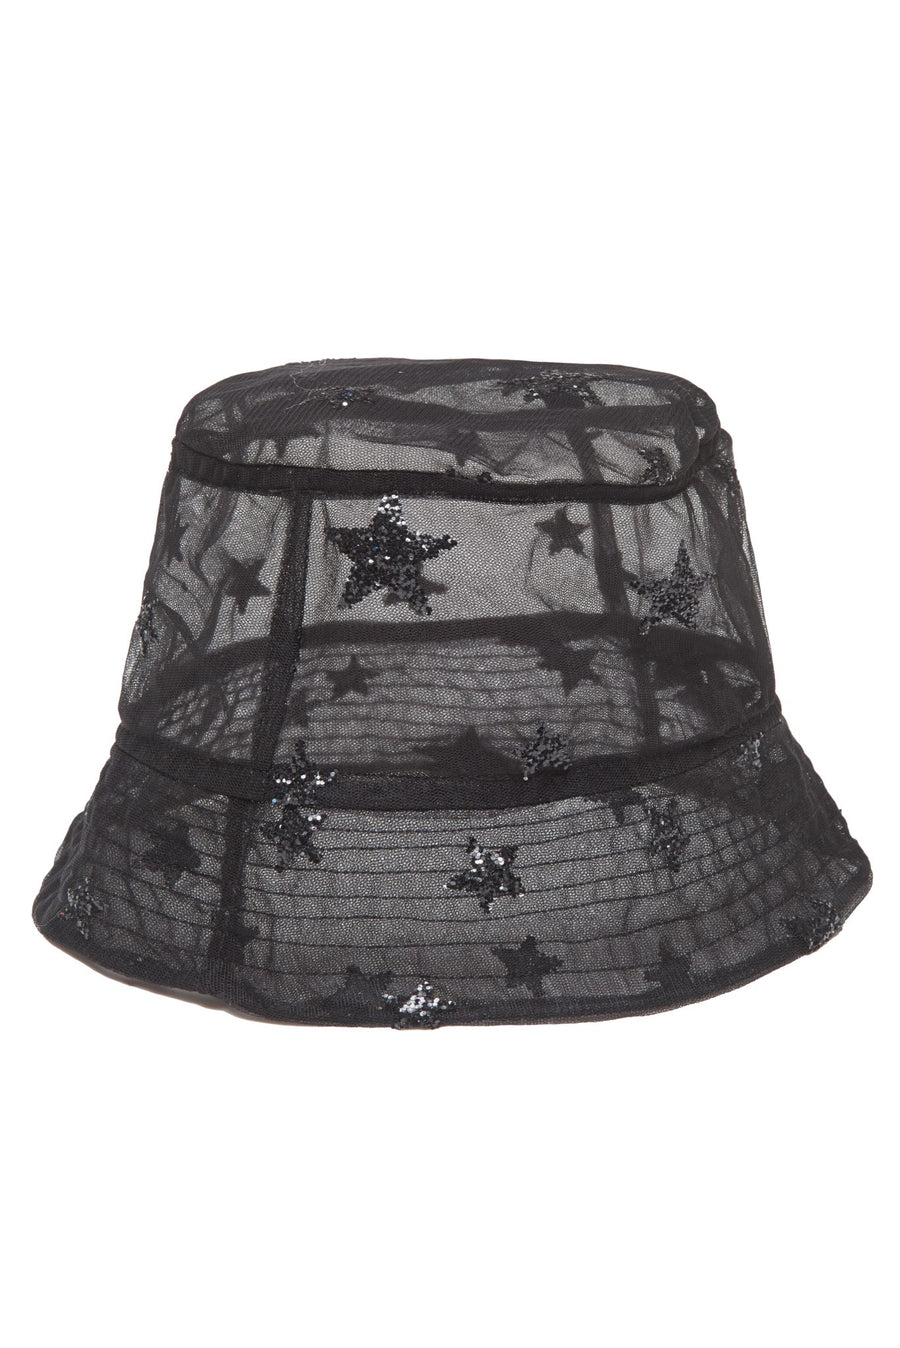 Stars in Her Eyes Bucket Hat